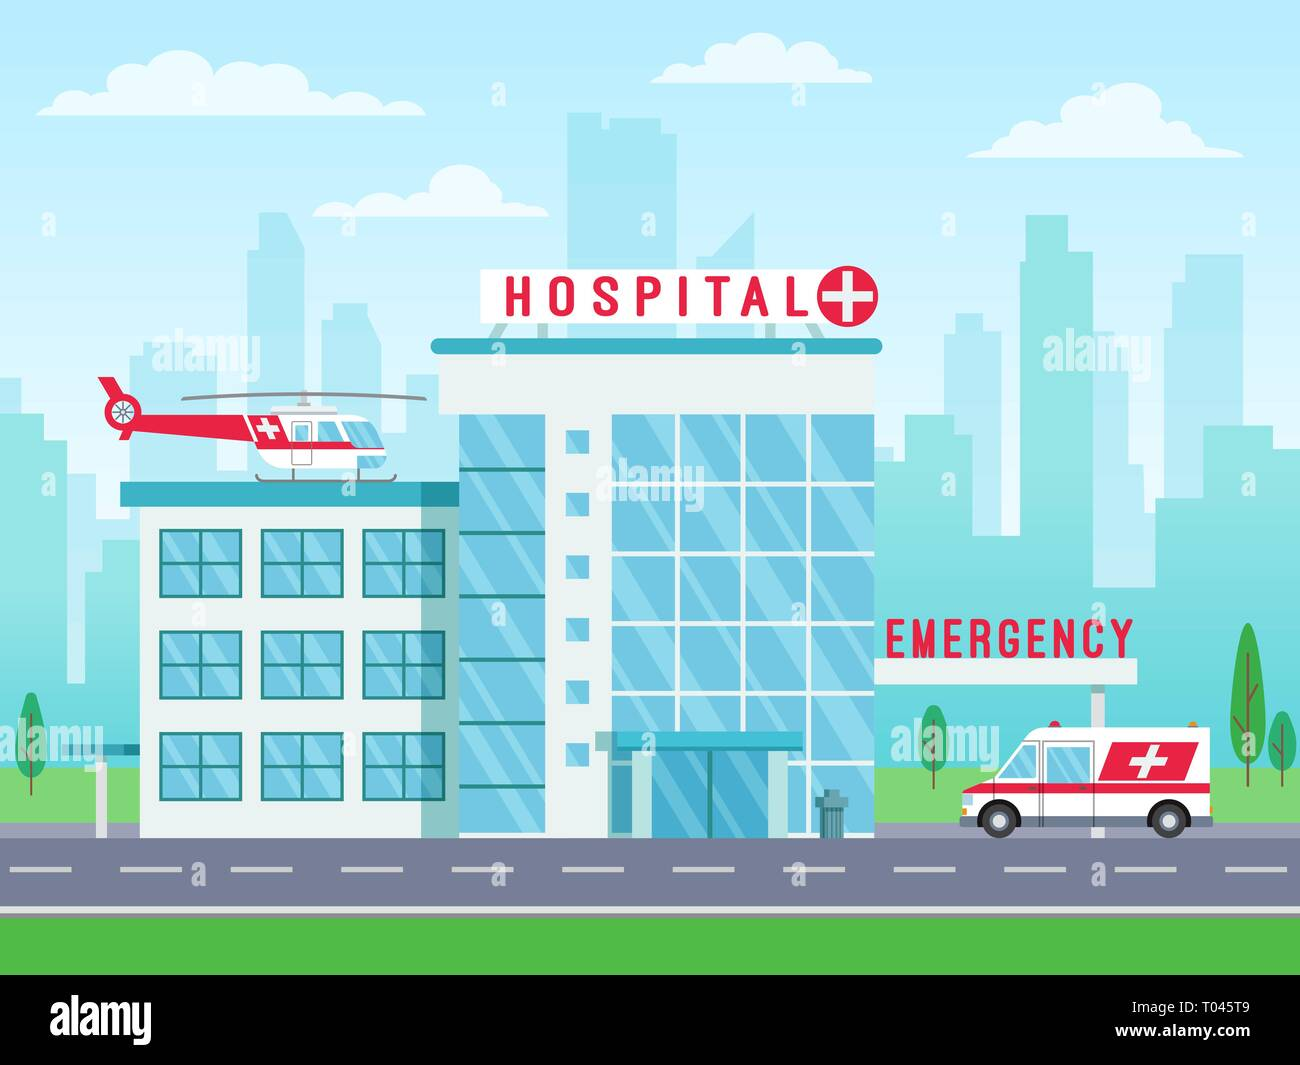 Hospital building with ambulance helicopter on roof and car standing on road, medical services, clinic building with big windows, vector illustration - Stock Vector